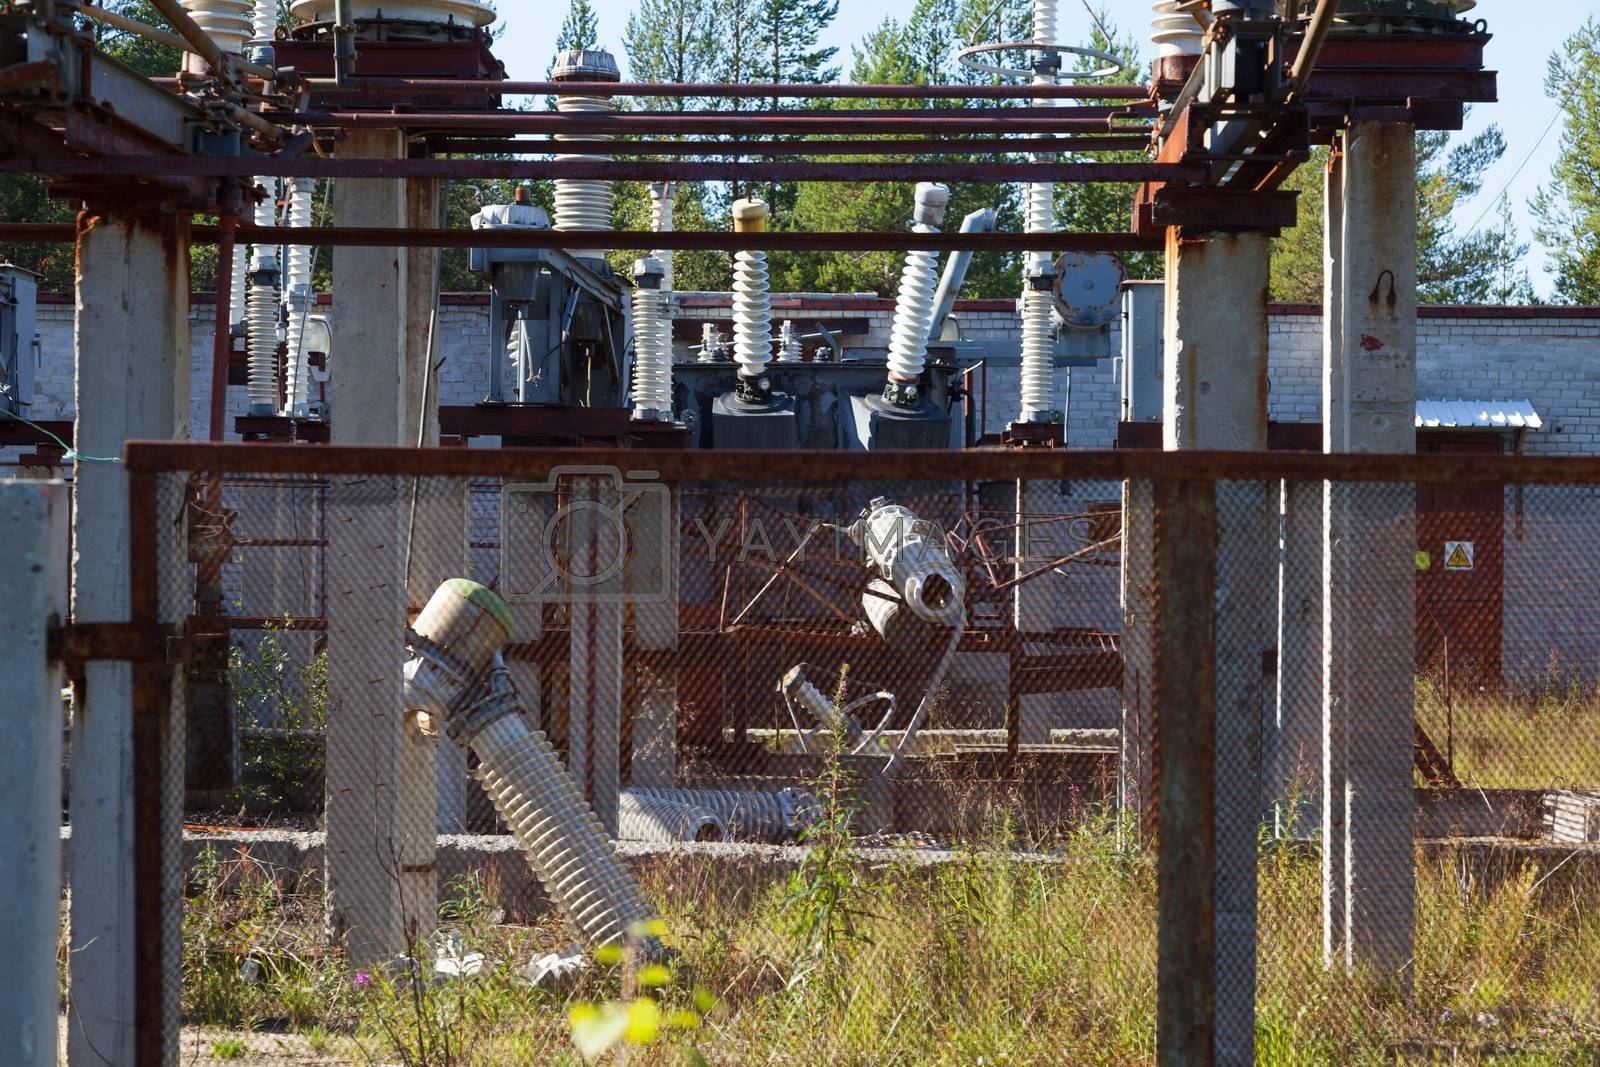 The destruction at the transformer substation as a result of a terrorist act